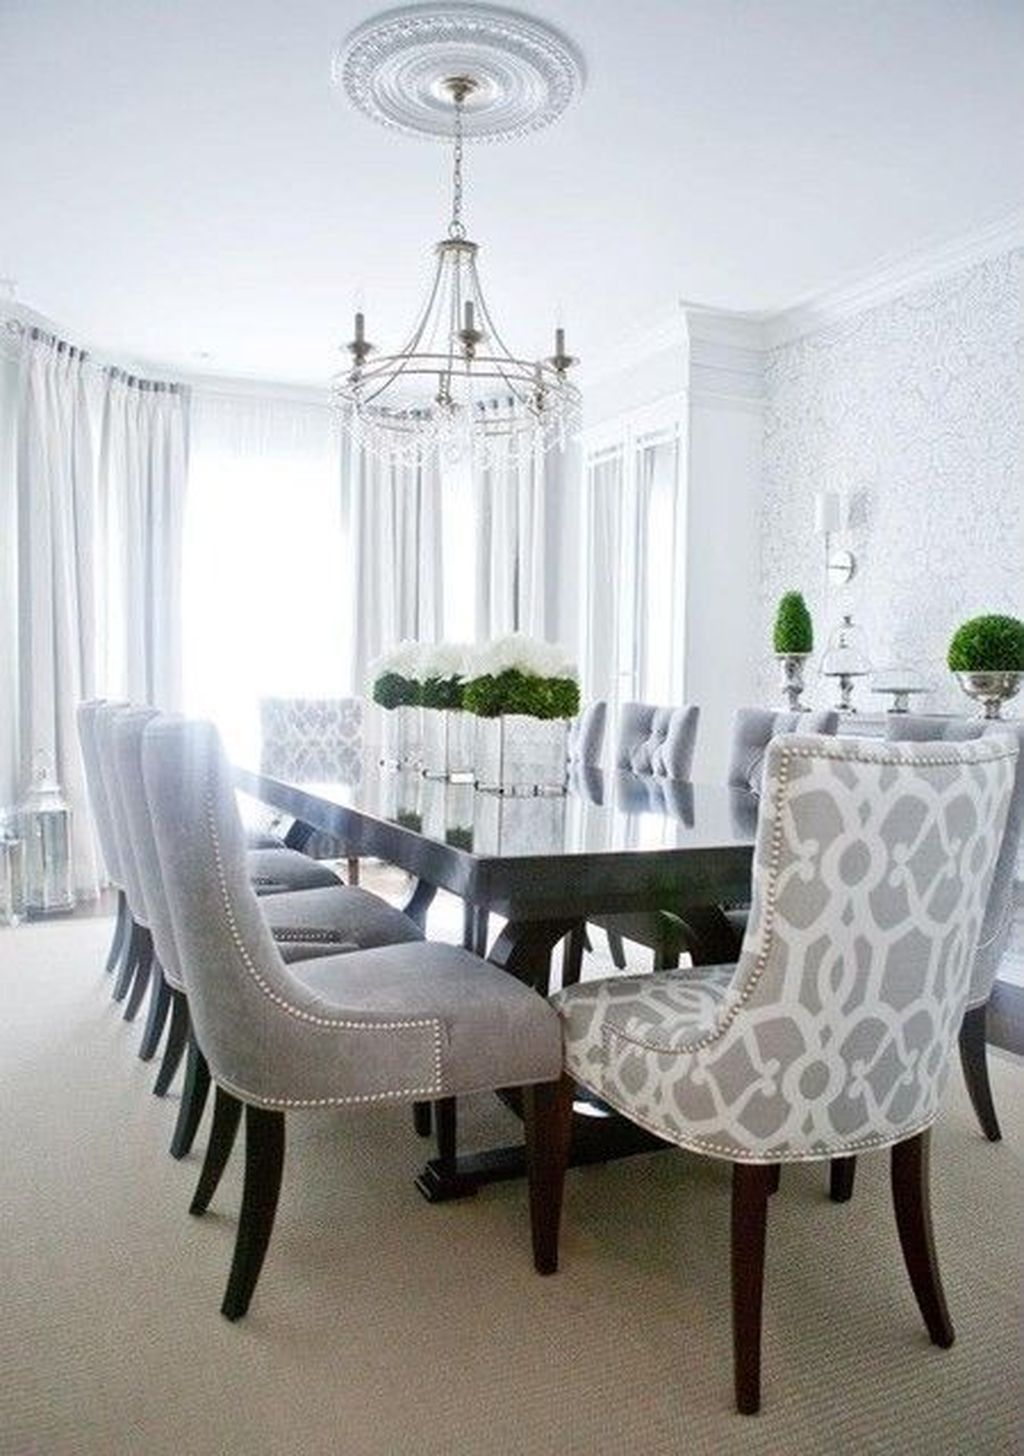 40 Classy Modern Contemporary Dining Room Ideas Trendehouse Classy Dining Room Grey Dining Room Chairs Luxury Dining Room